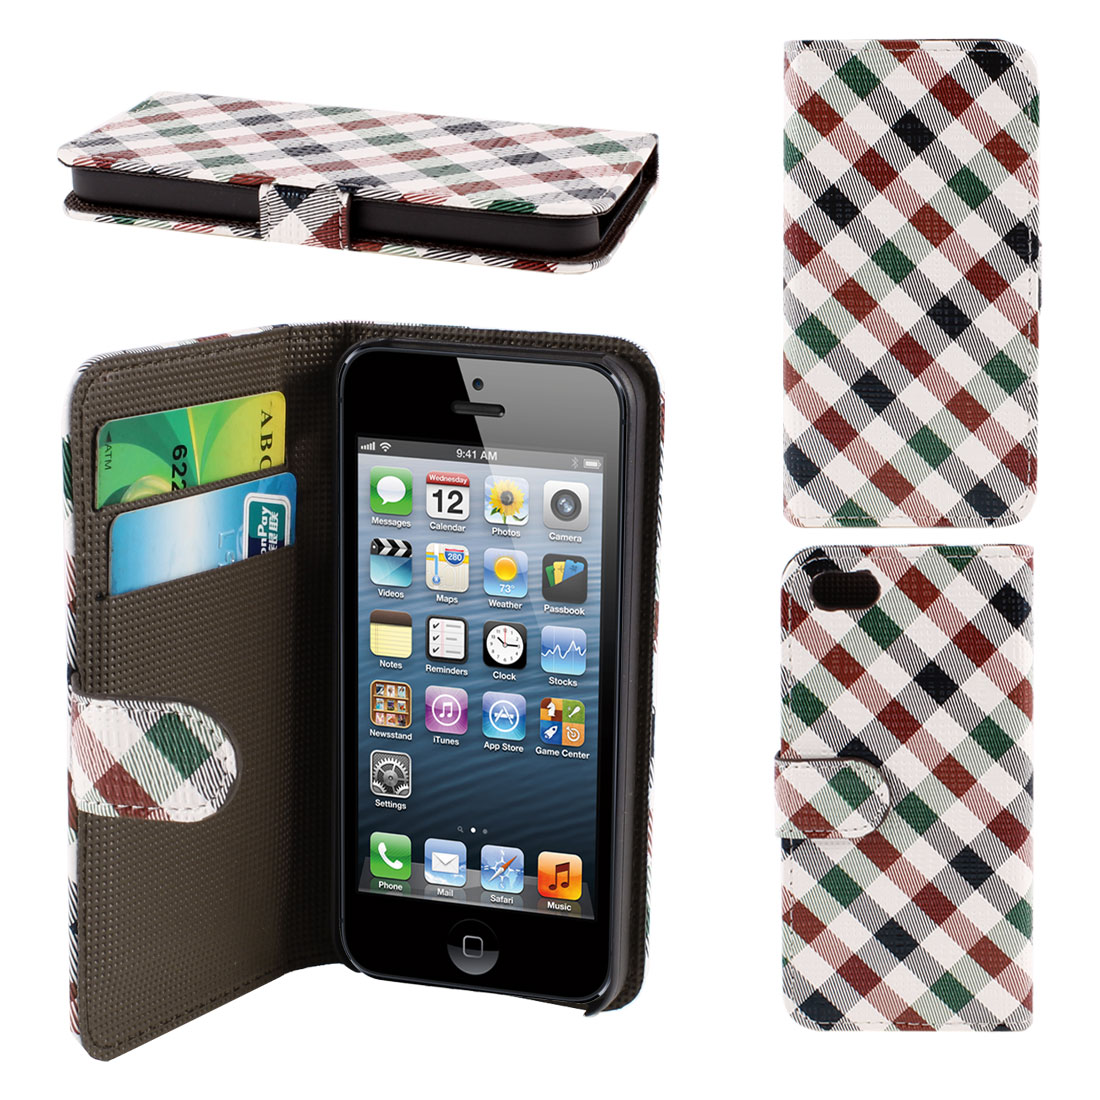 Plaid Print Red Green PU Leather Flip Folio Case Cover Pouch for iPhone 5 5G 5th